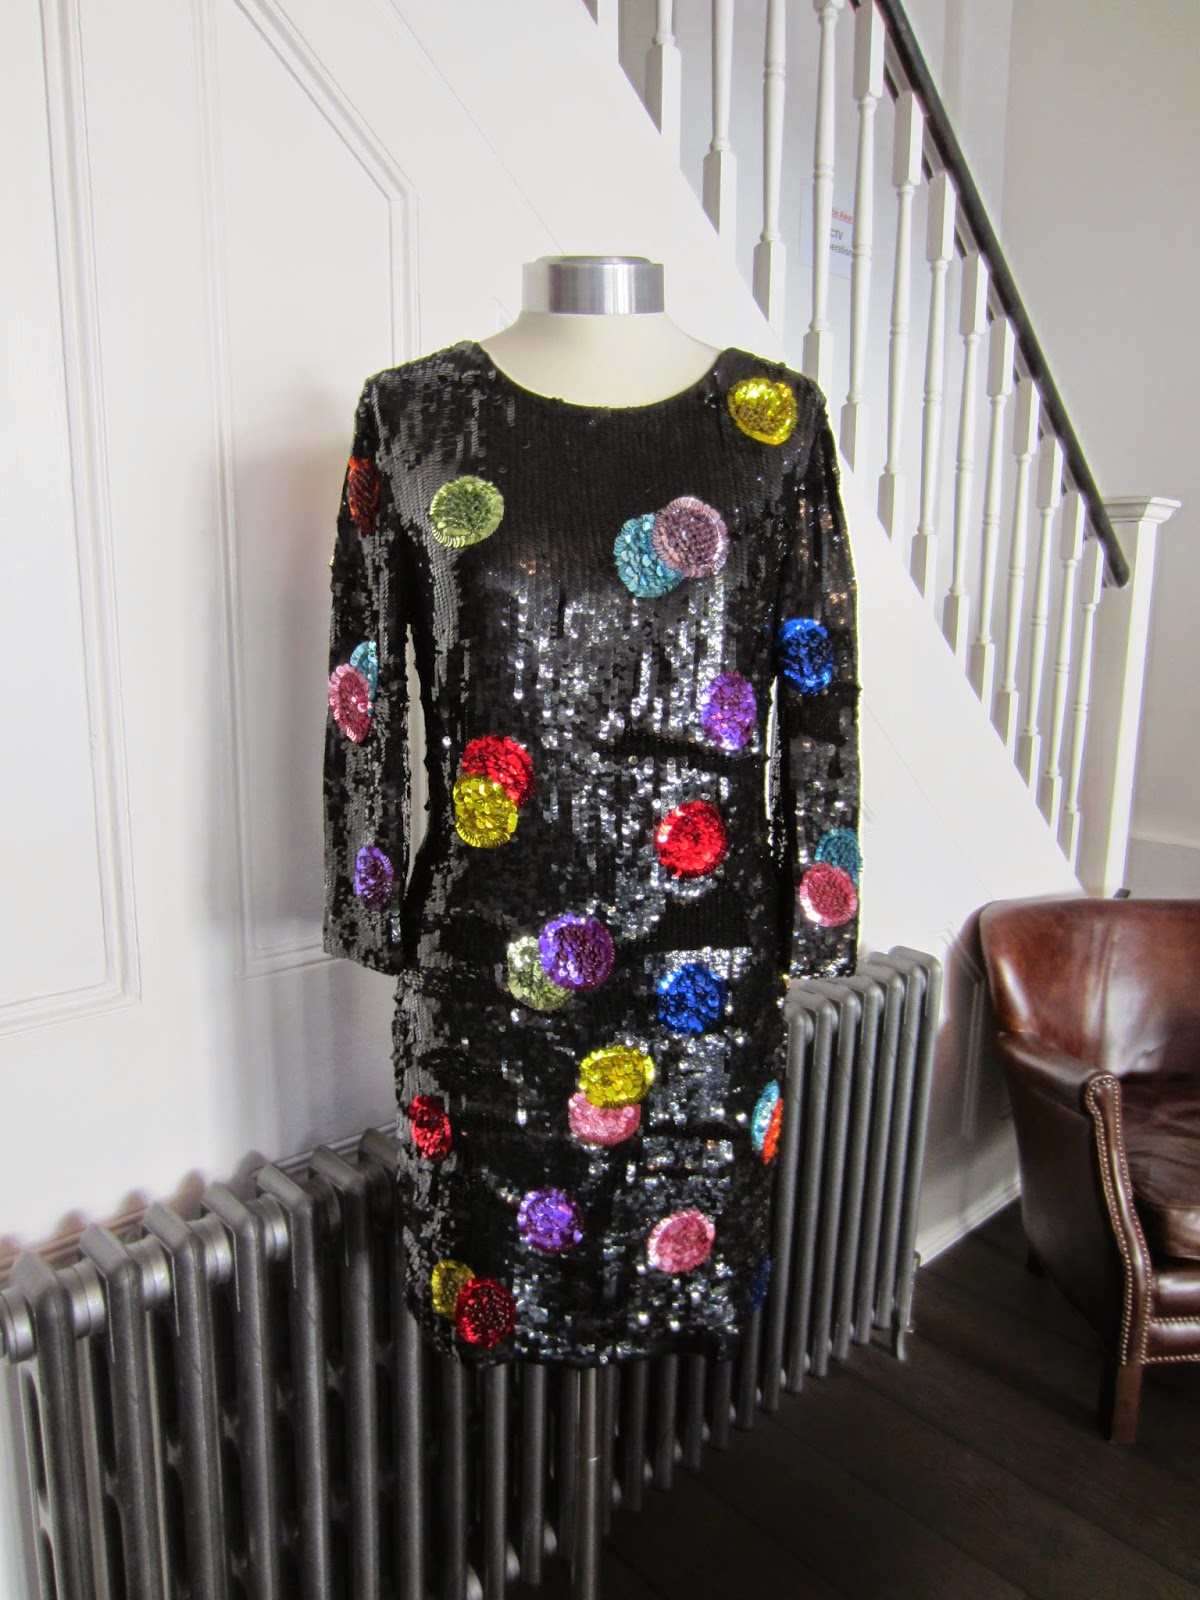 D&G Black/Multicoloured Sequin Dress